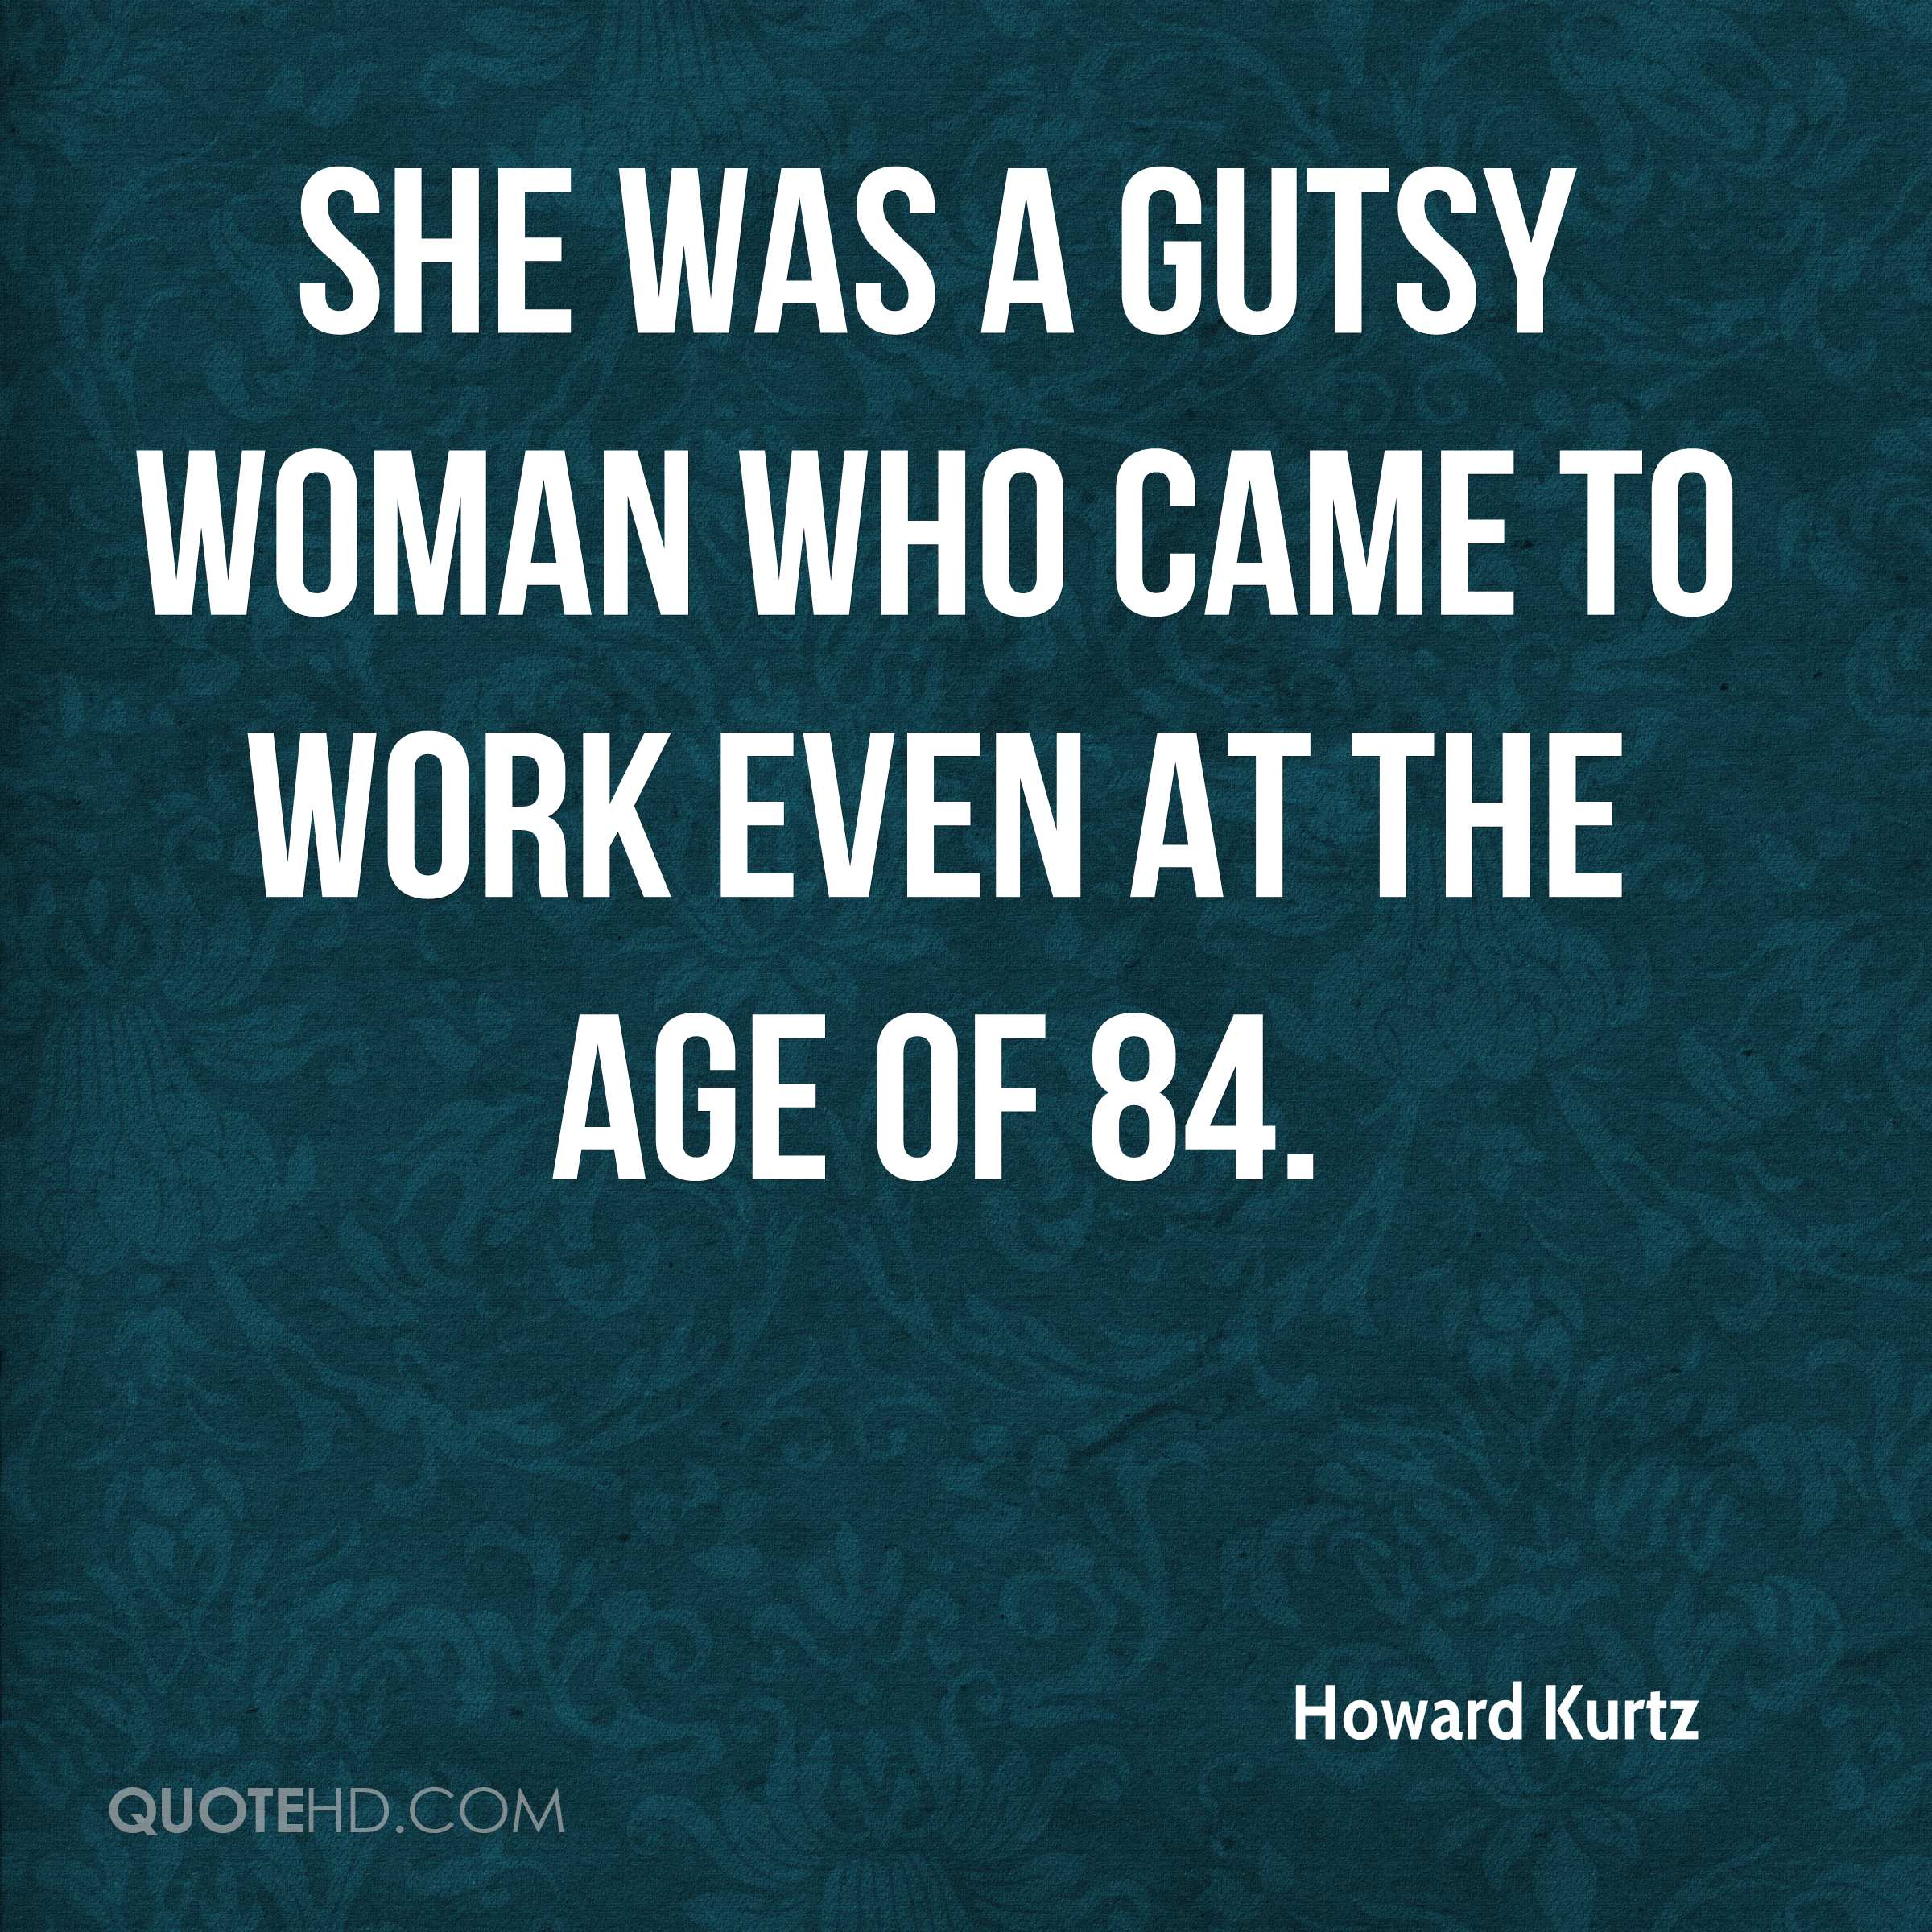 She was a gutsy woman who came to work even at the age of 84.